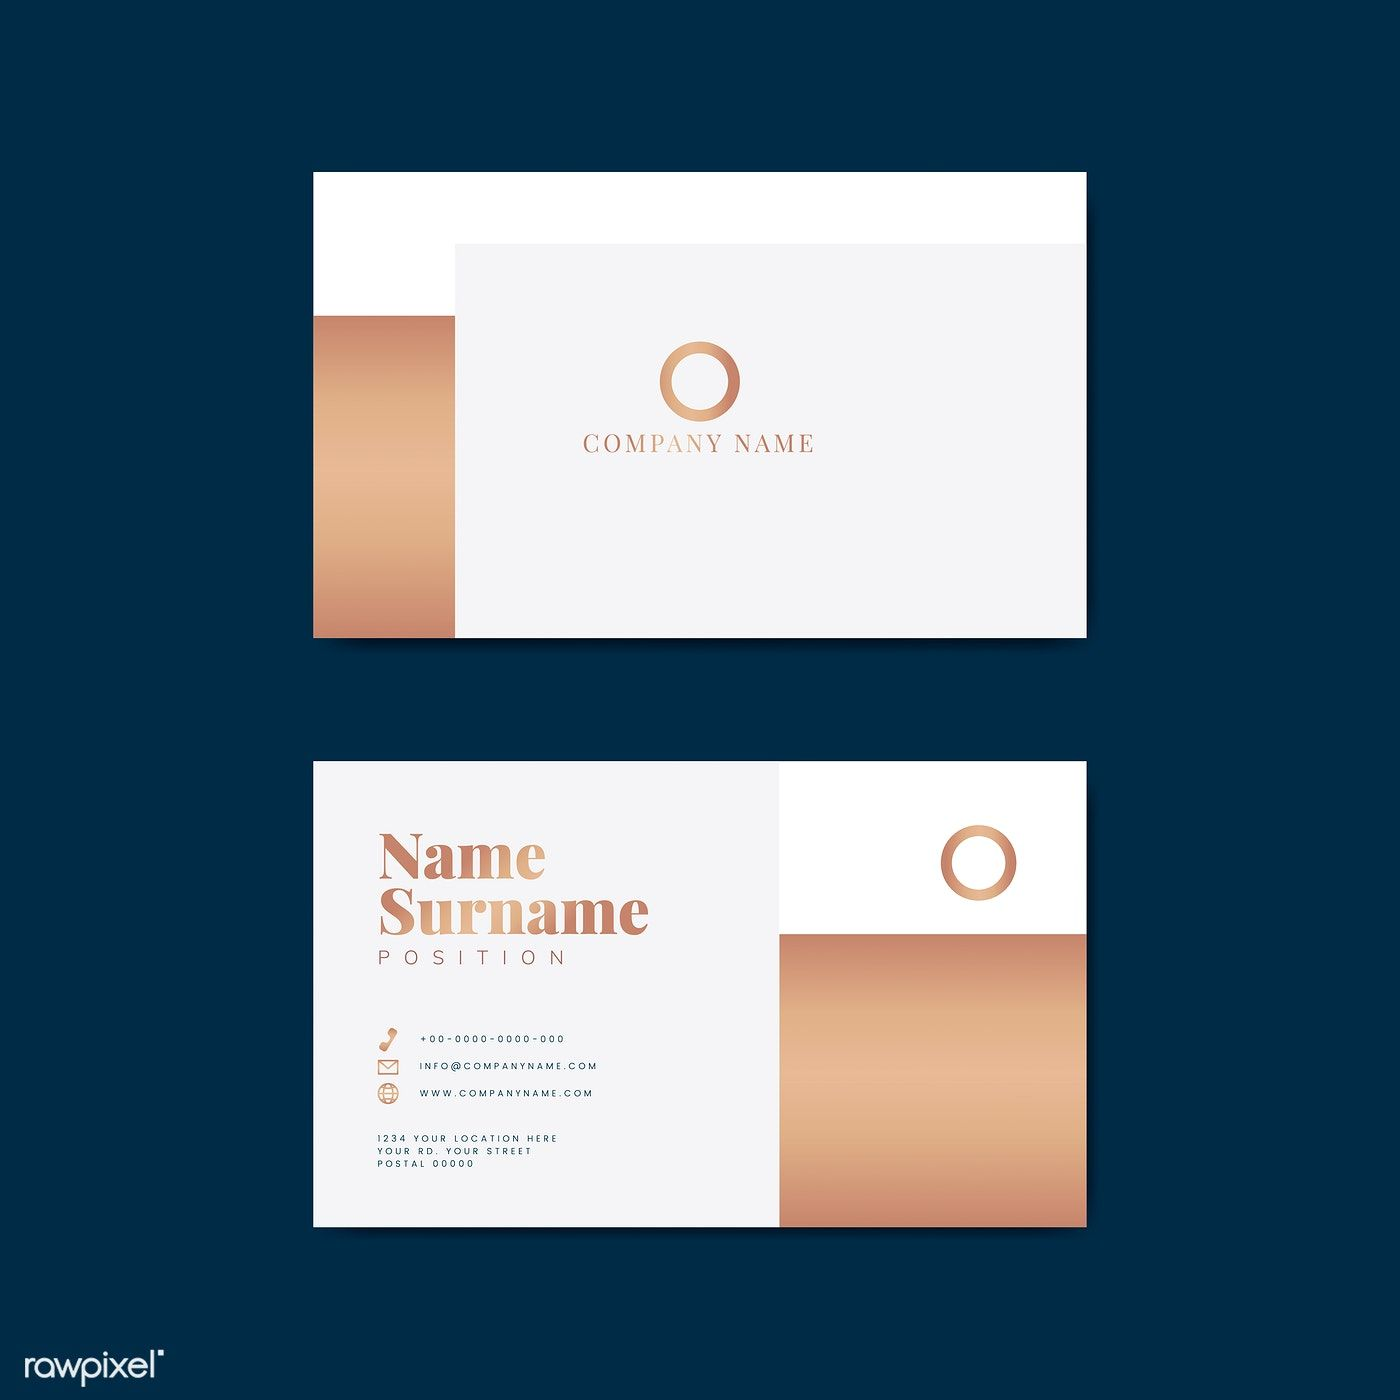 Monotone Business Card Template Mockup Vector Free Image By Rawpixel Com Tvz Free Business Card Templates Business Card Design Minimal Vector Business Card